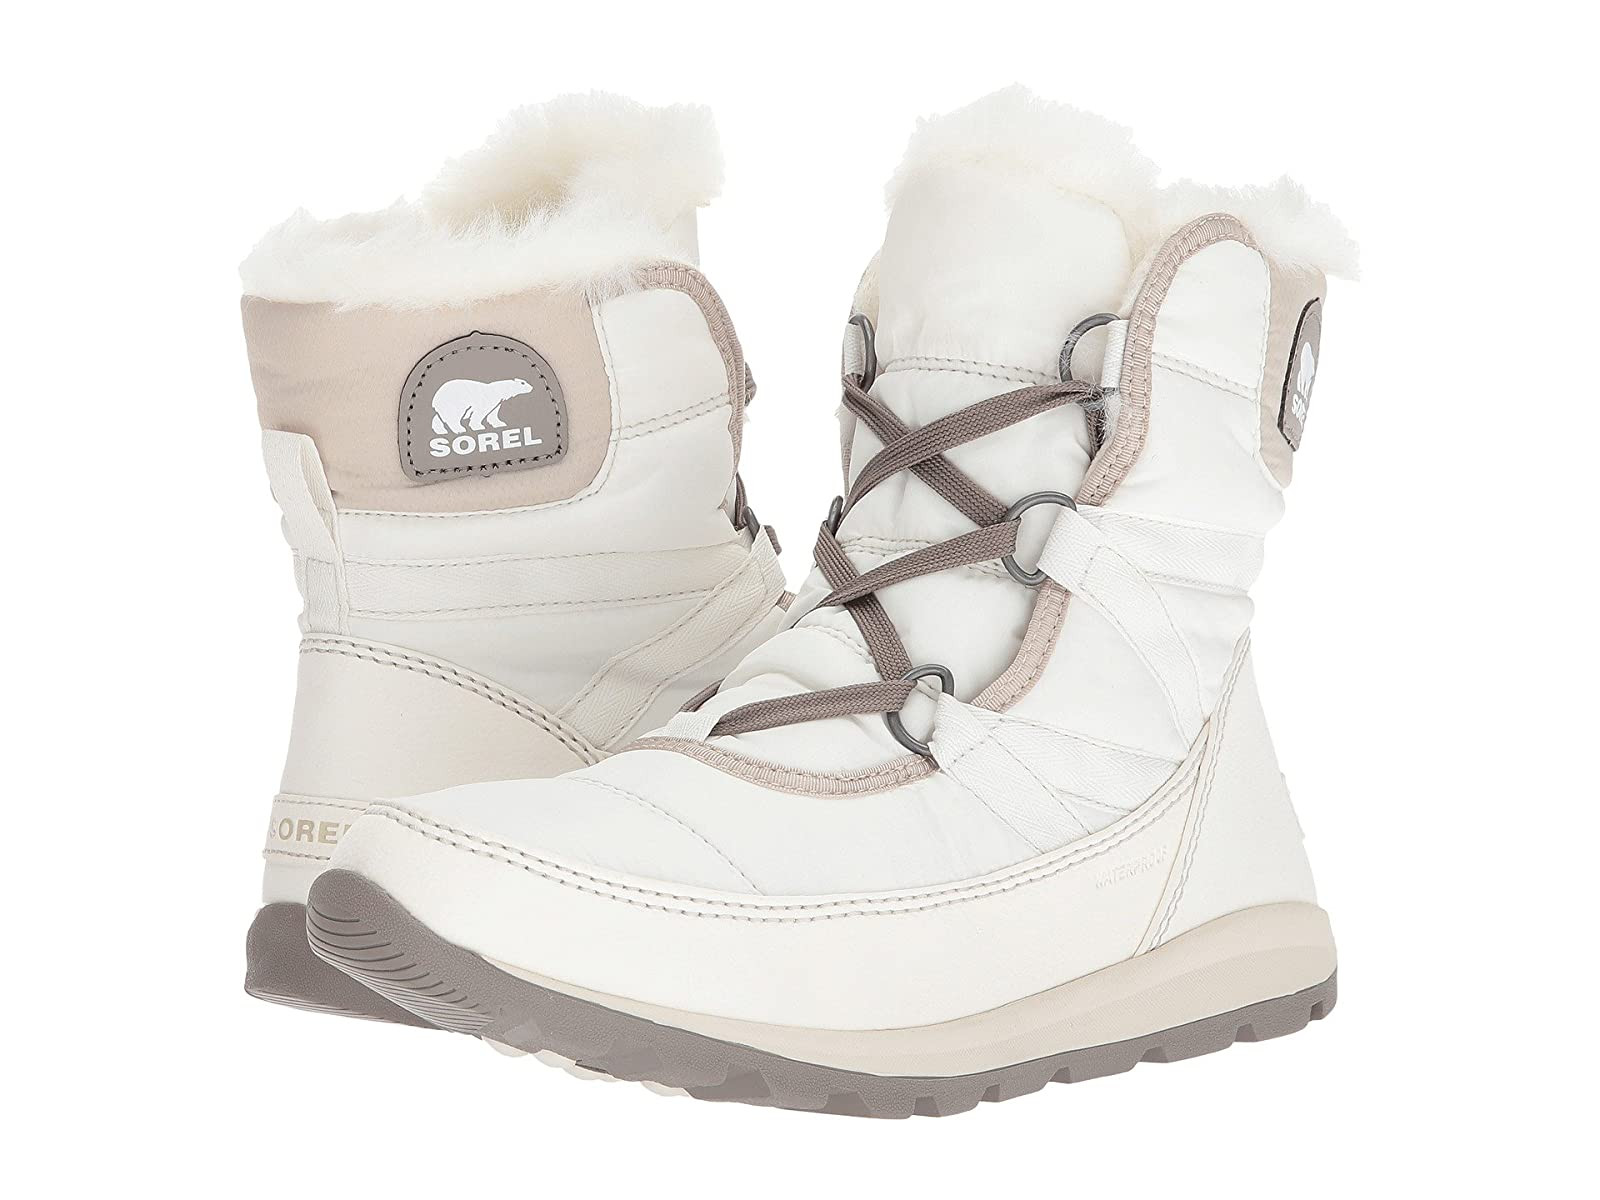 SOREL Whitney Short LaceCheap and distinctive eye-catching shoes